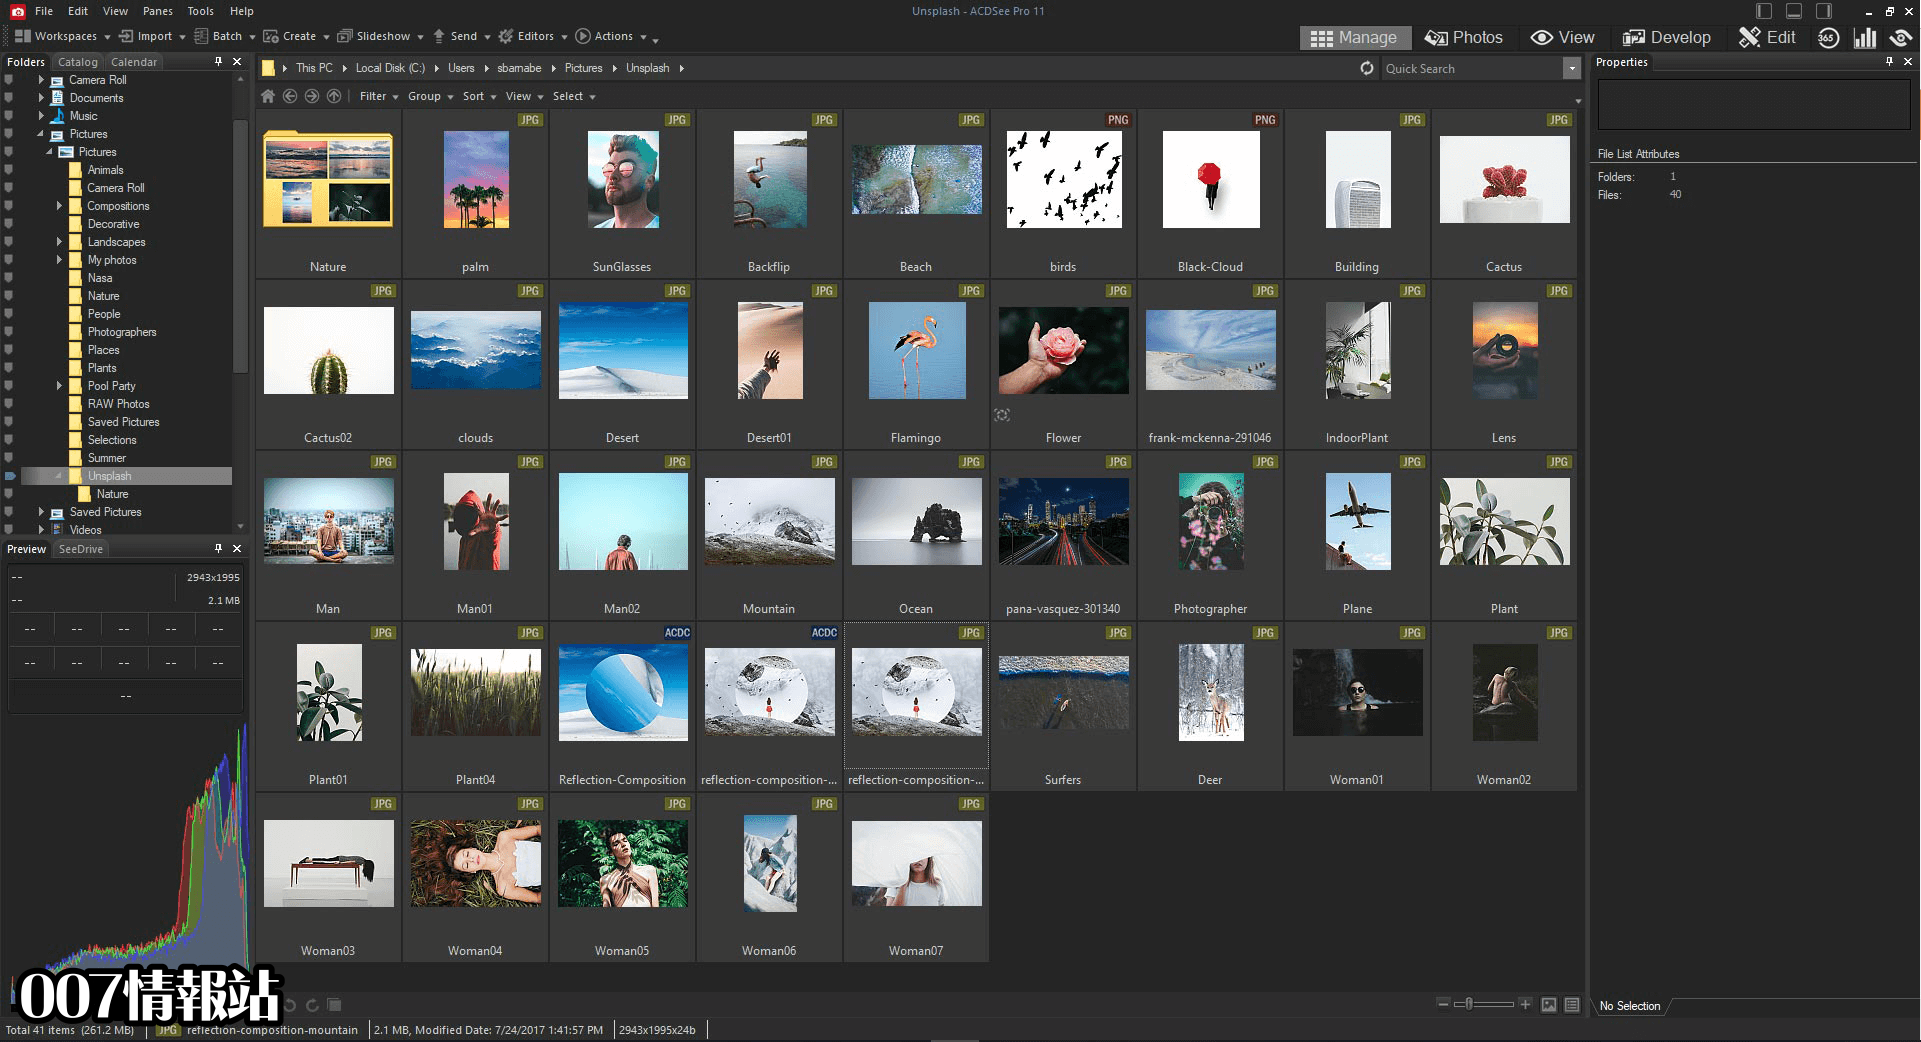 ACDSee Photo Studio Professional (64-bit) Screenshot 4